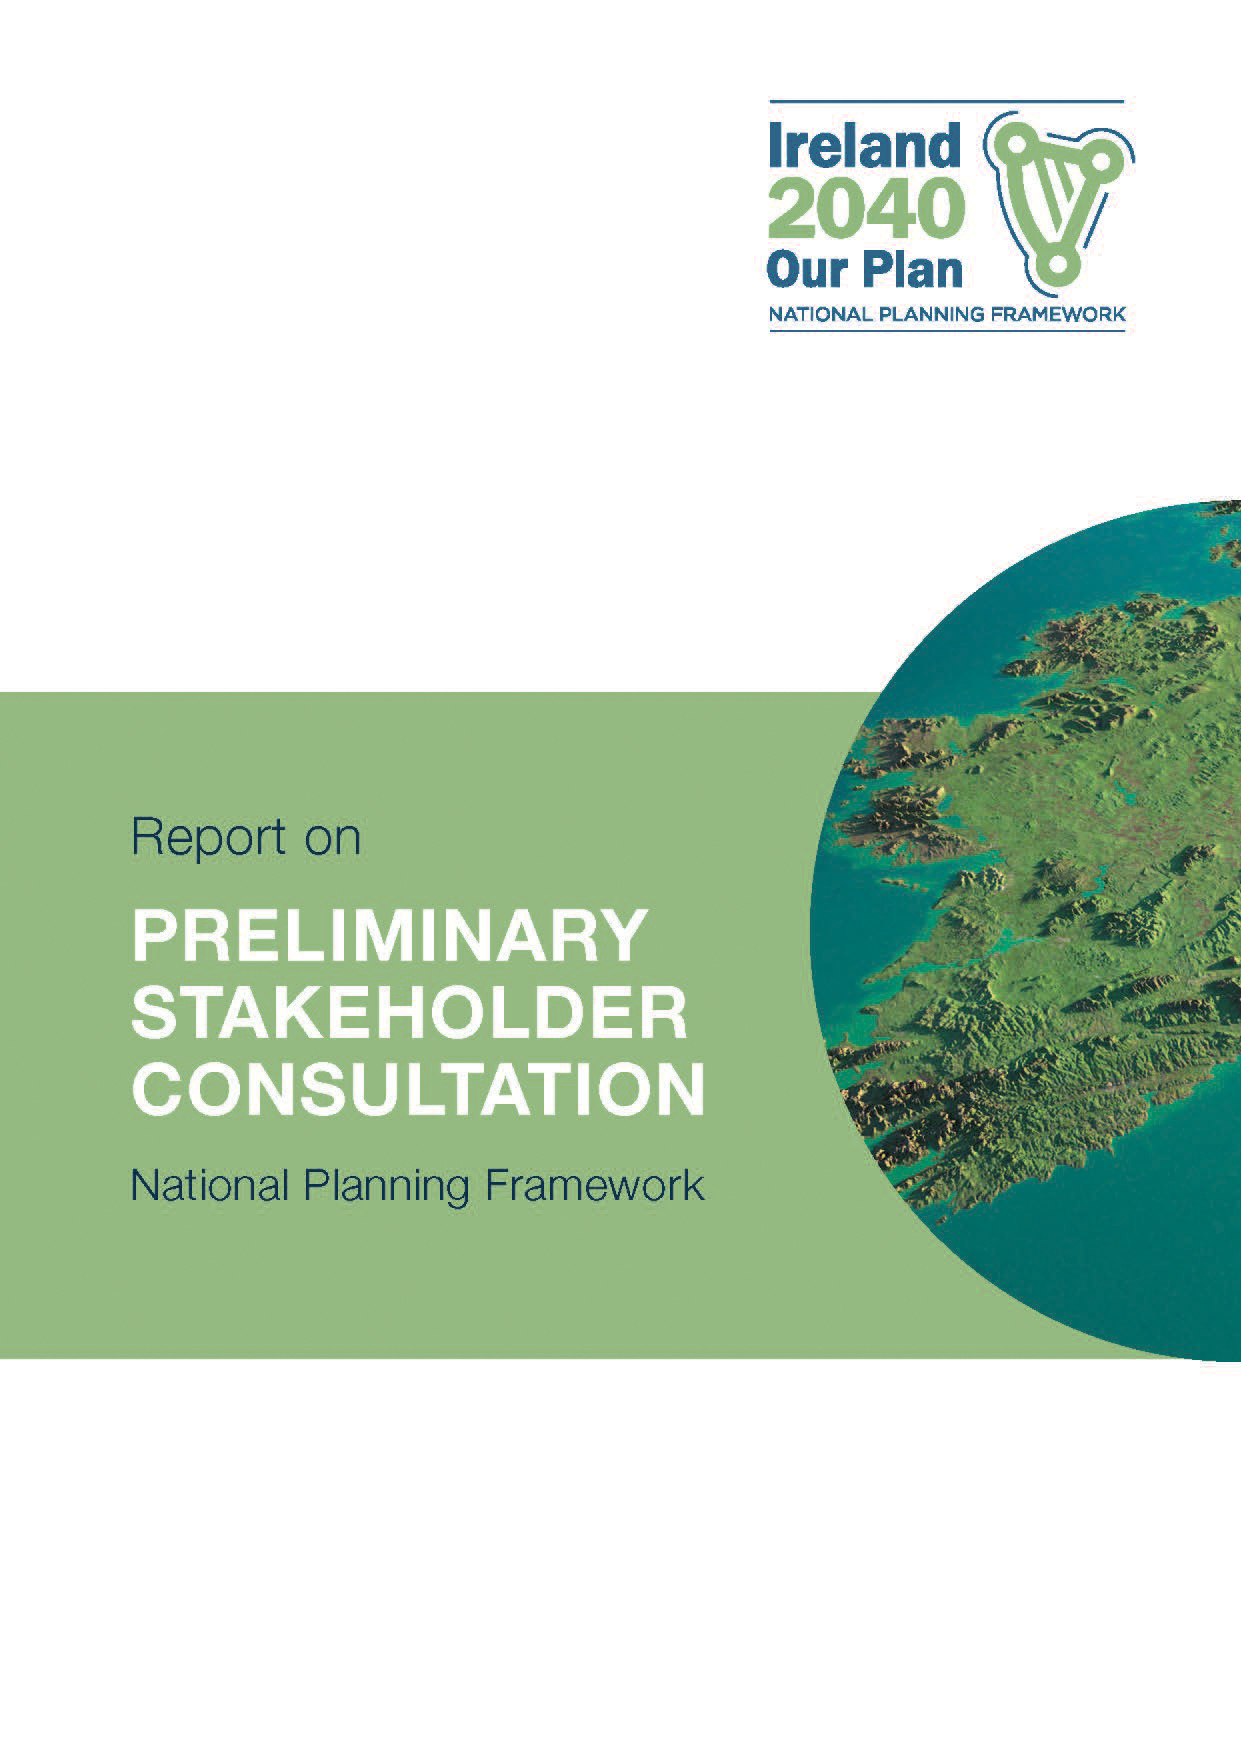 Report on Preliminary Stakeholder Consultation COVER